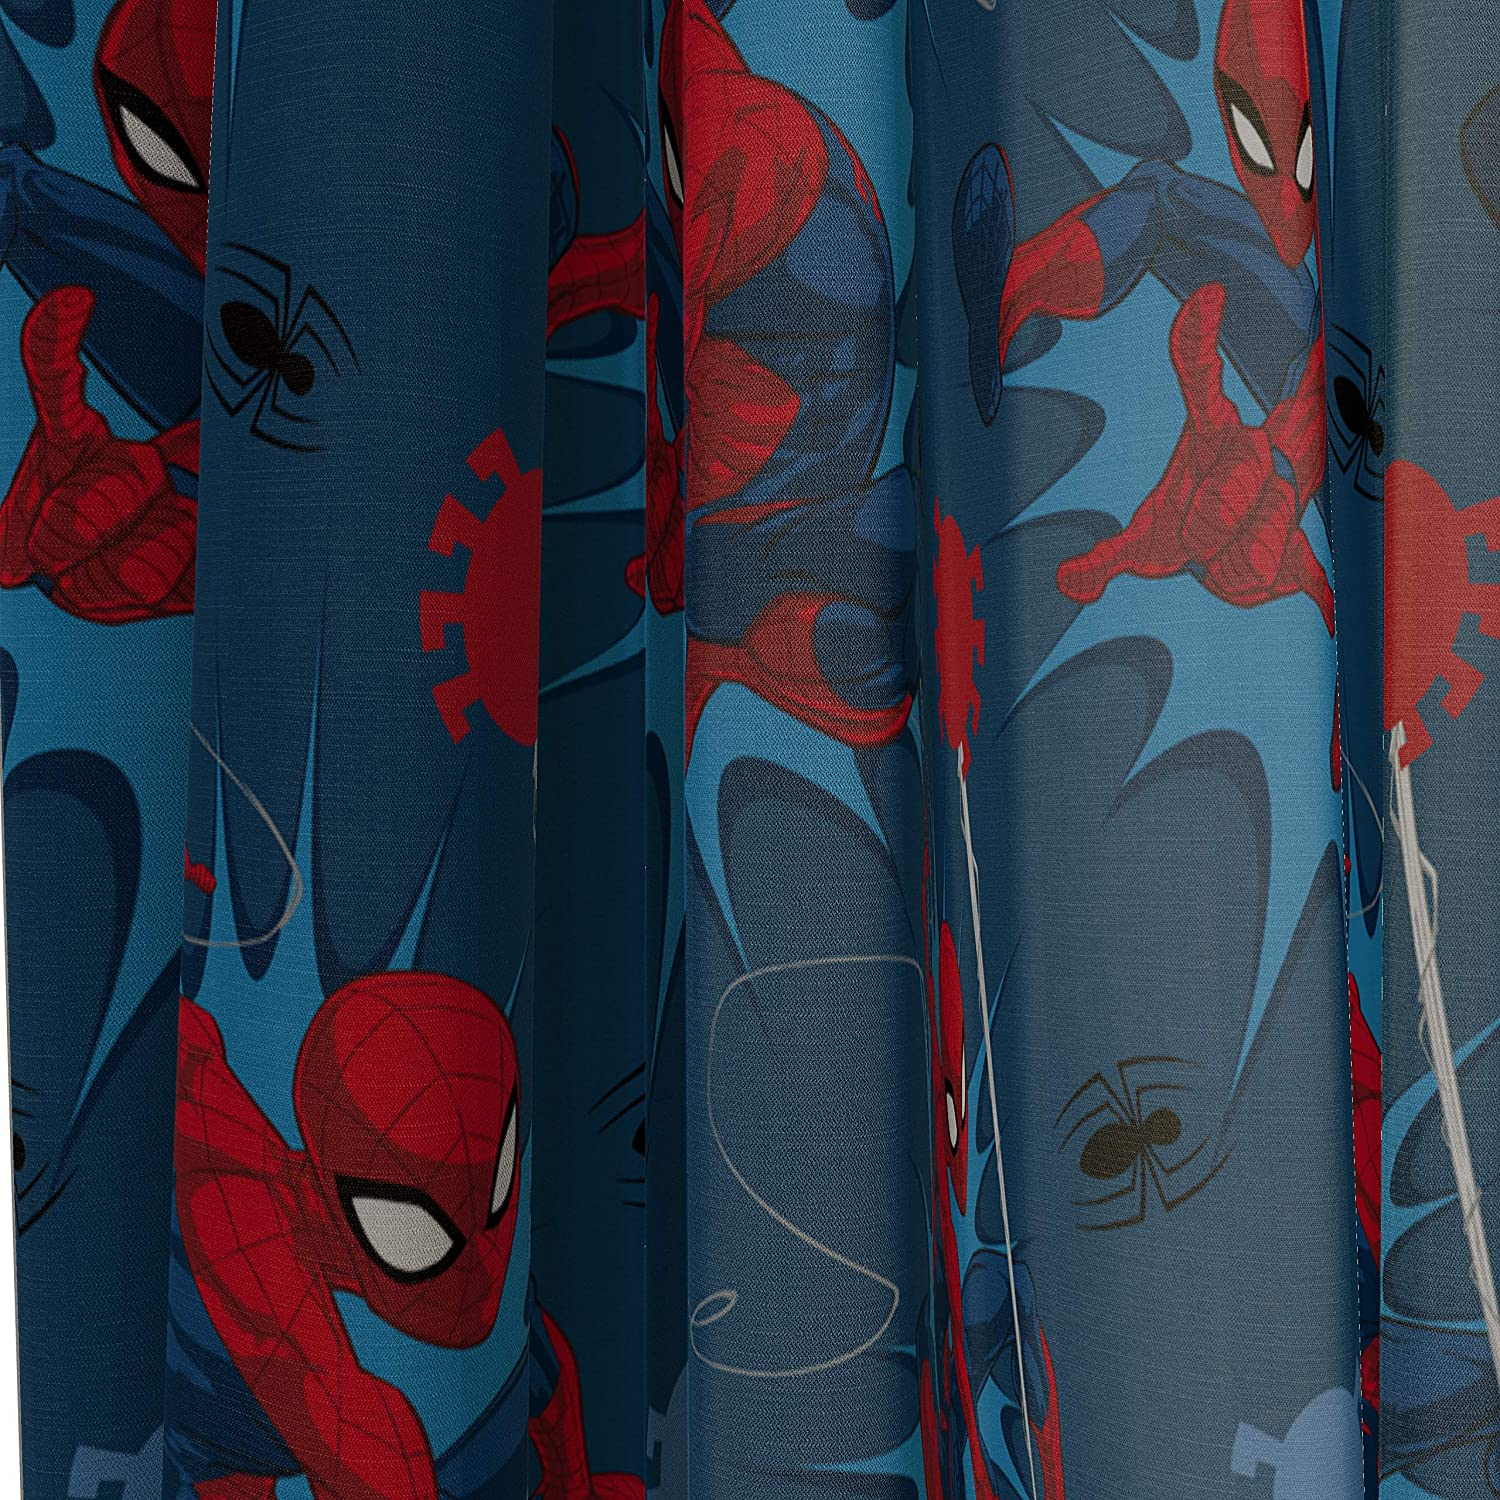 Bedding 4 Piece Set Marvel Spiderman Spidey Daze 63 Inch Drapes Curtains Include 2 Tiebacks Beautiful Room D/écor /& Easy Set Up Official Marvel Product